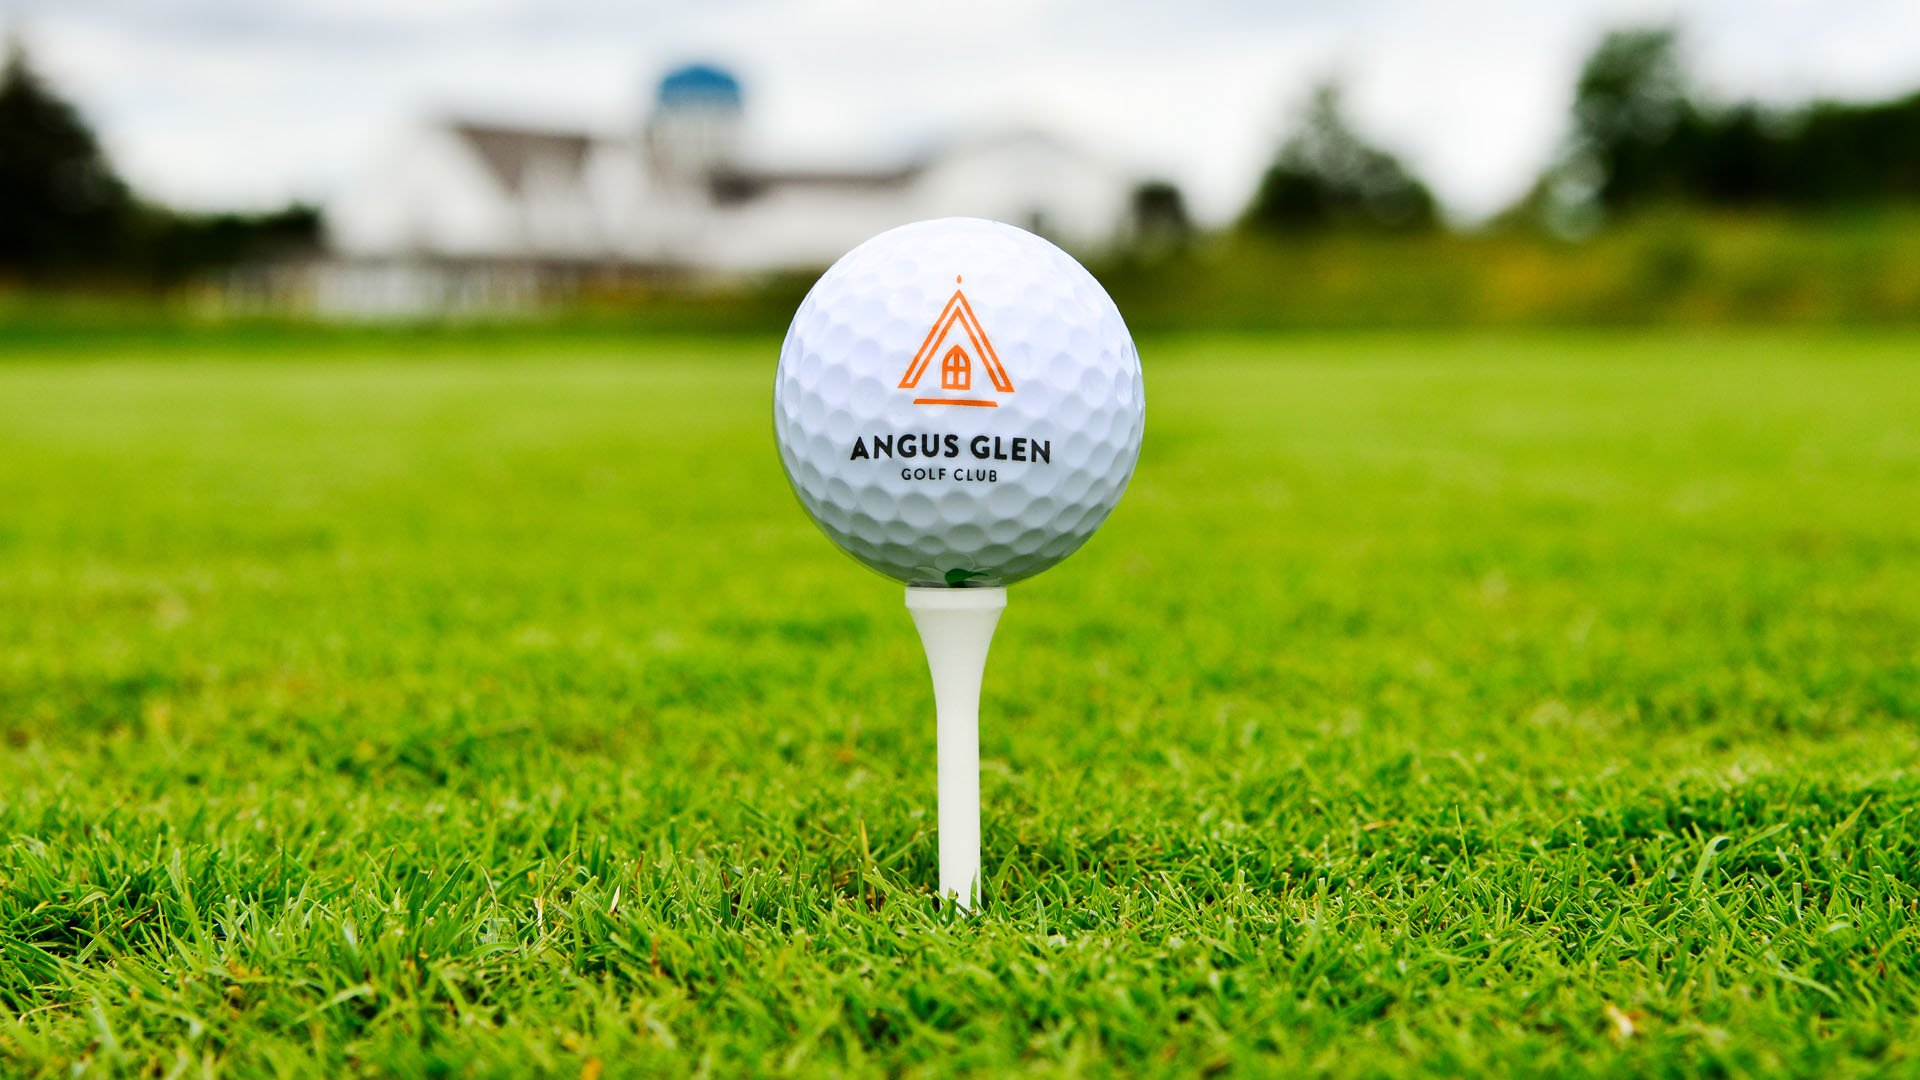 angus glen golf ball